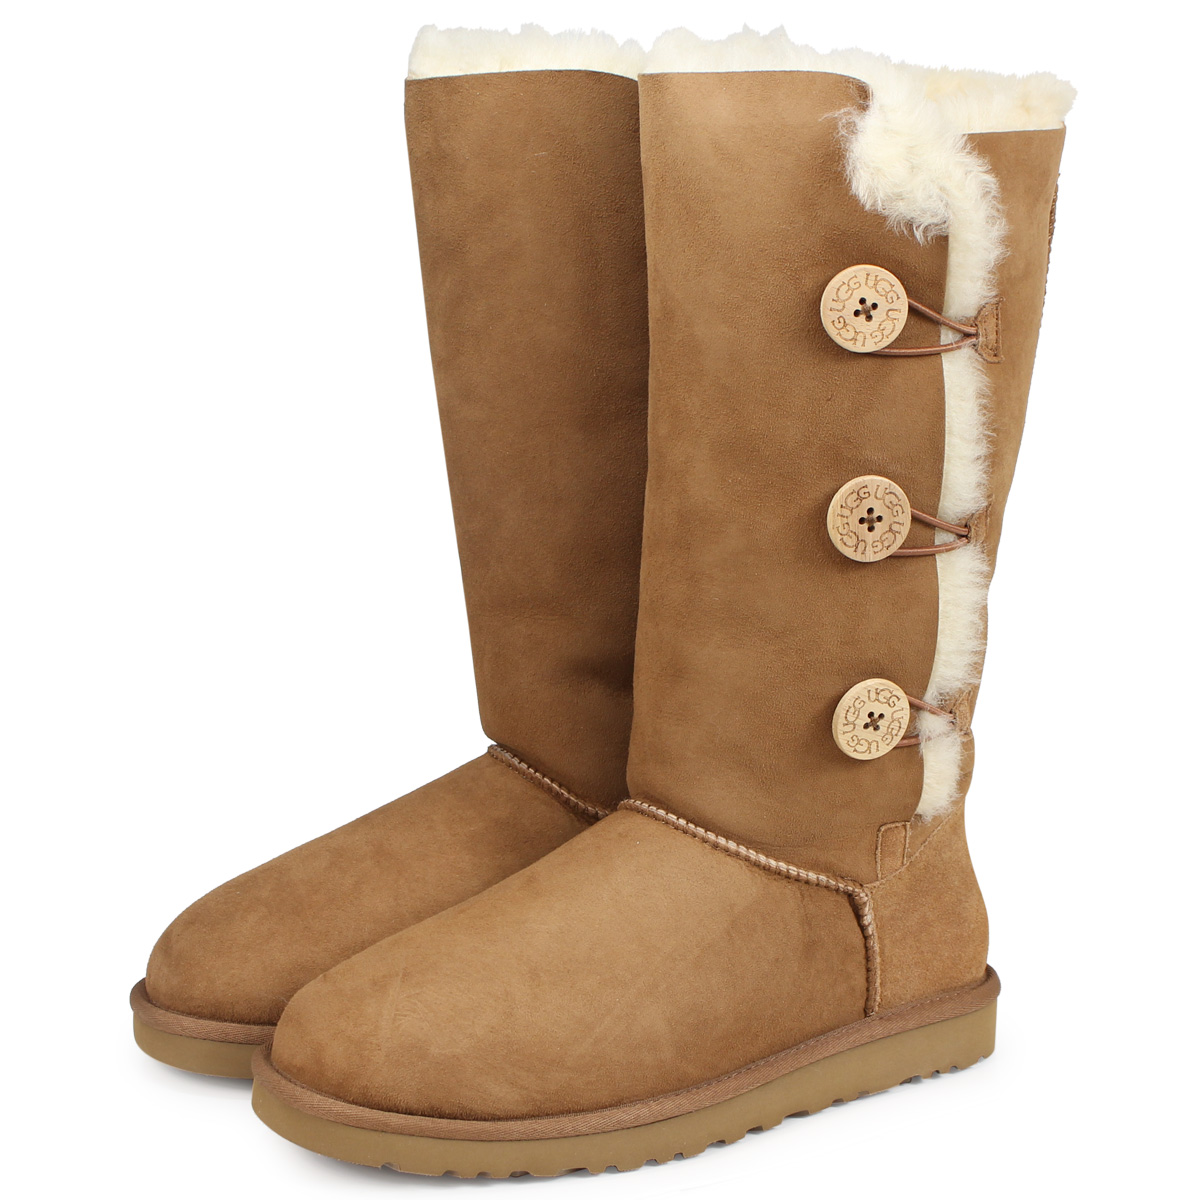 2bdd222ee0e 1873 アグ UGG boots mouton boots Bailey button triplet 2 lady's 1016227  WOMENS BAILEY BUTTON TRIPLET II regular article [178]